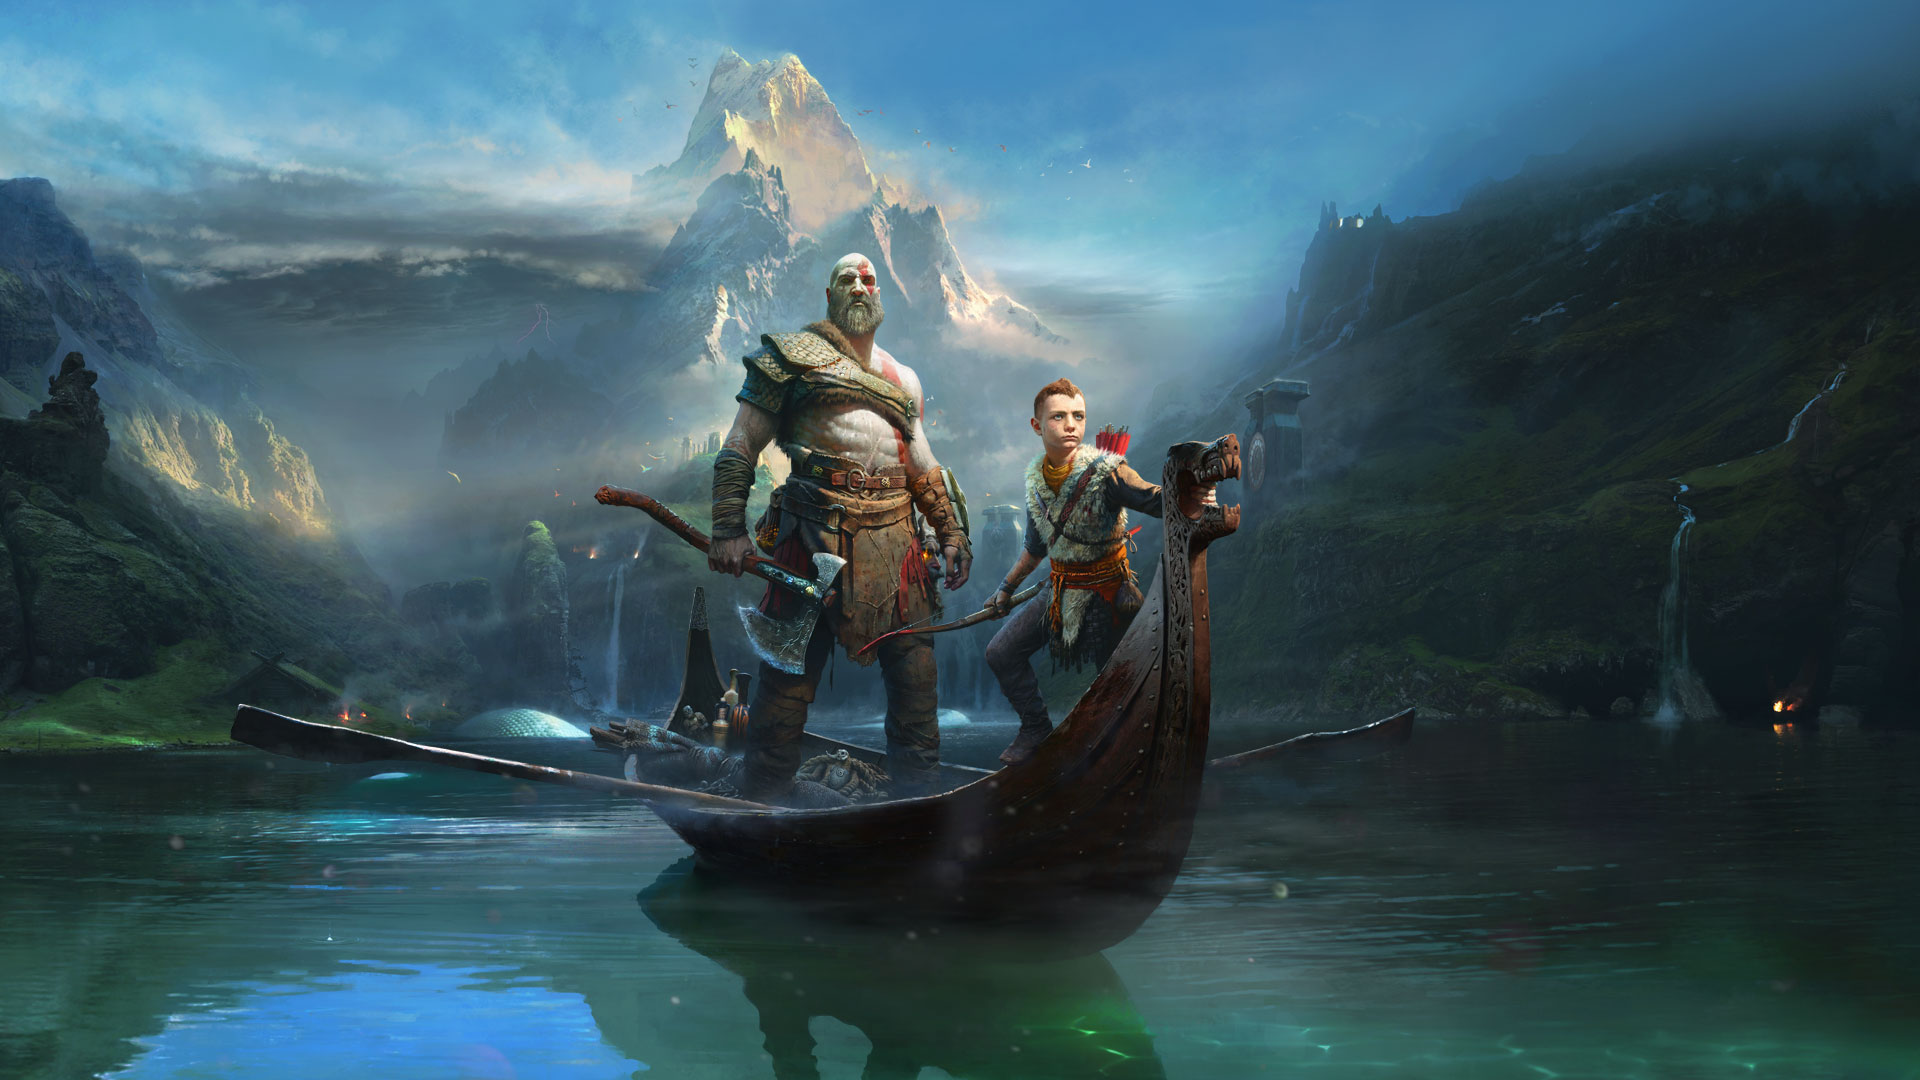 god of war 4 2018, hd games, 4k wallpapers, images, backgrounds